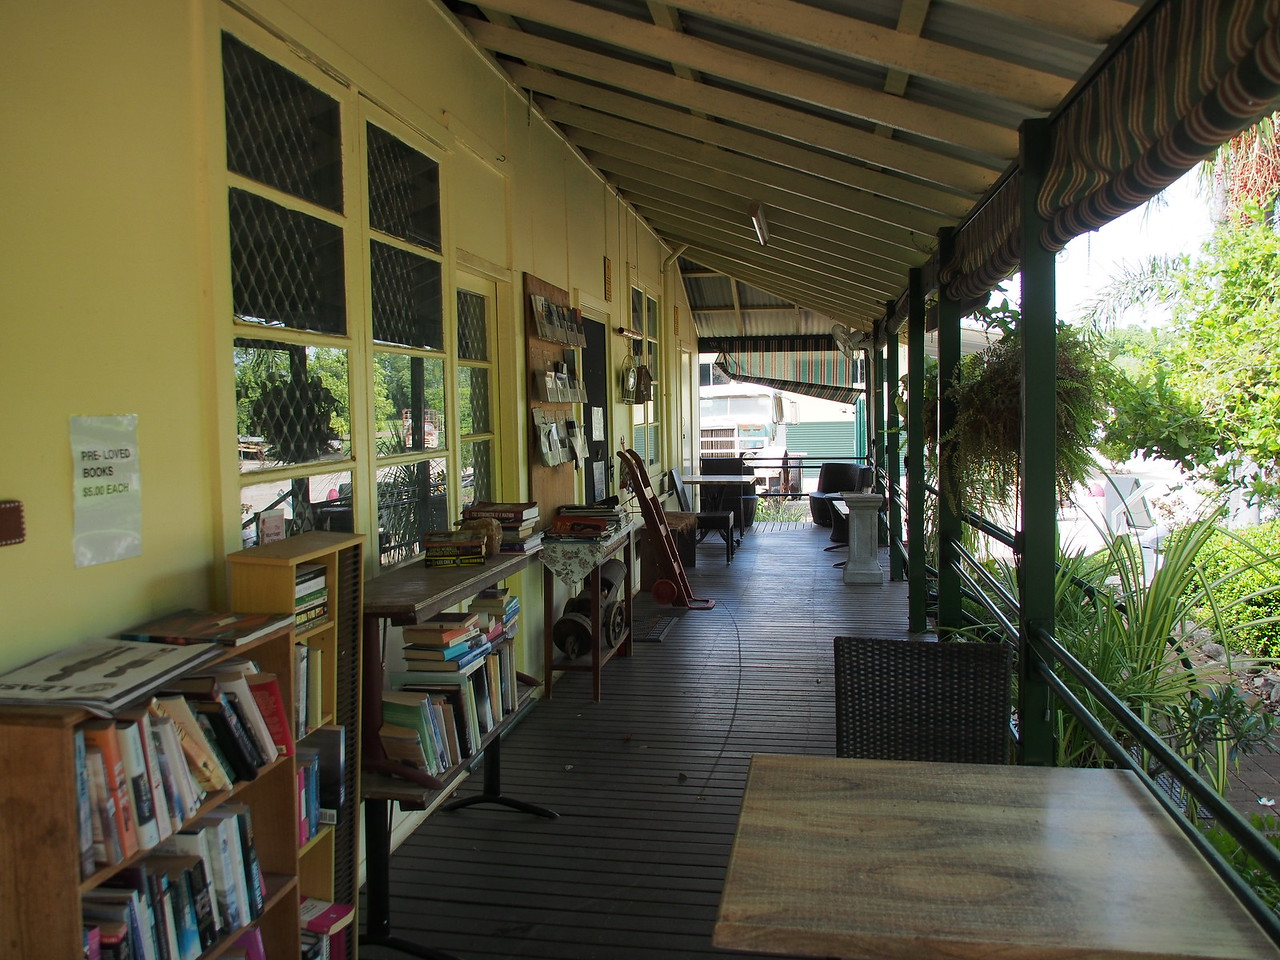 20180106_0955_0063 Katherine Museum & Community Gardens - open library/bookstore